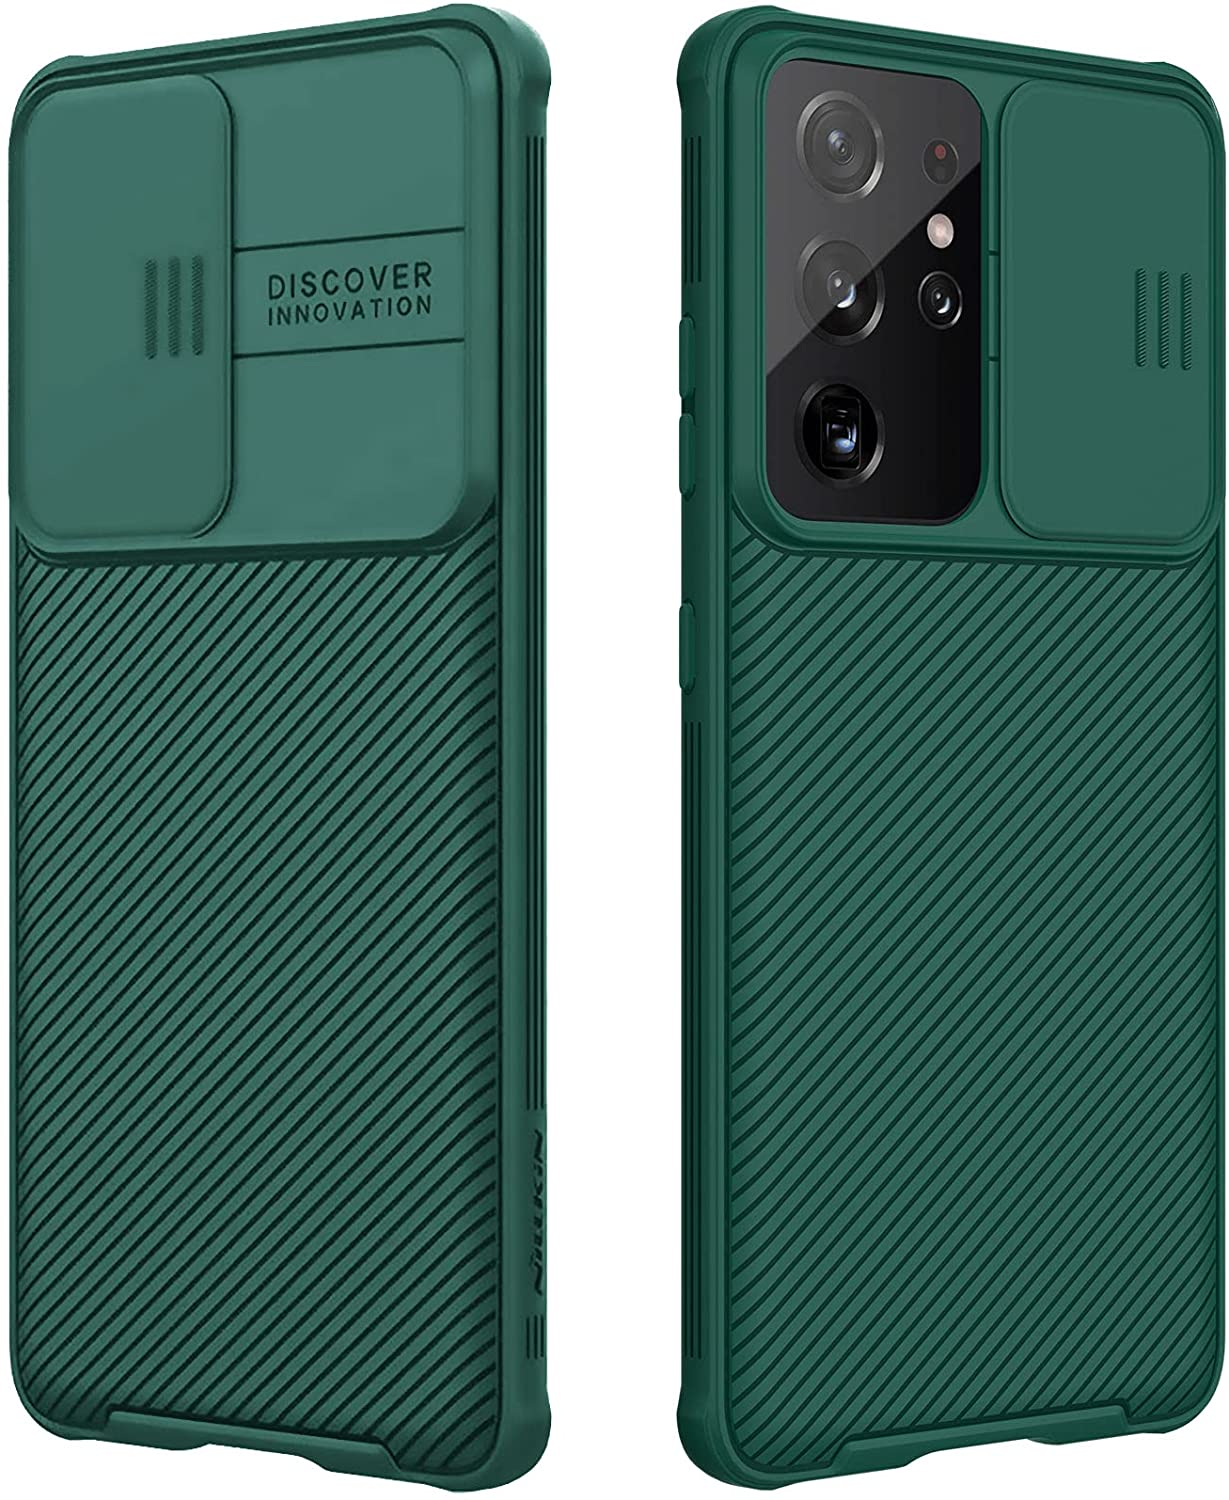 CloudValley for Samsung Galaxy S21 Ultra Case with Camera Cover, Full-Body Protective & Slim Fit, Camera Protection Case Only for Samsung Galaxy S21 Ultra 5G 6.8 inch (2021 Release)-Green